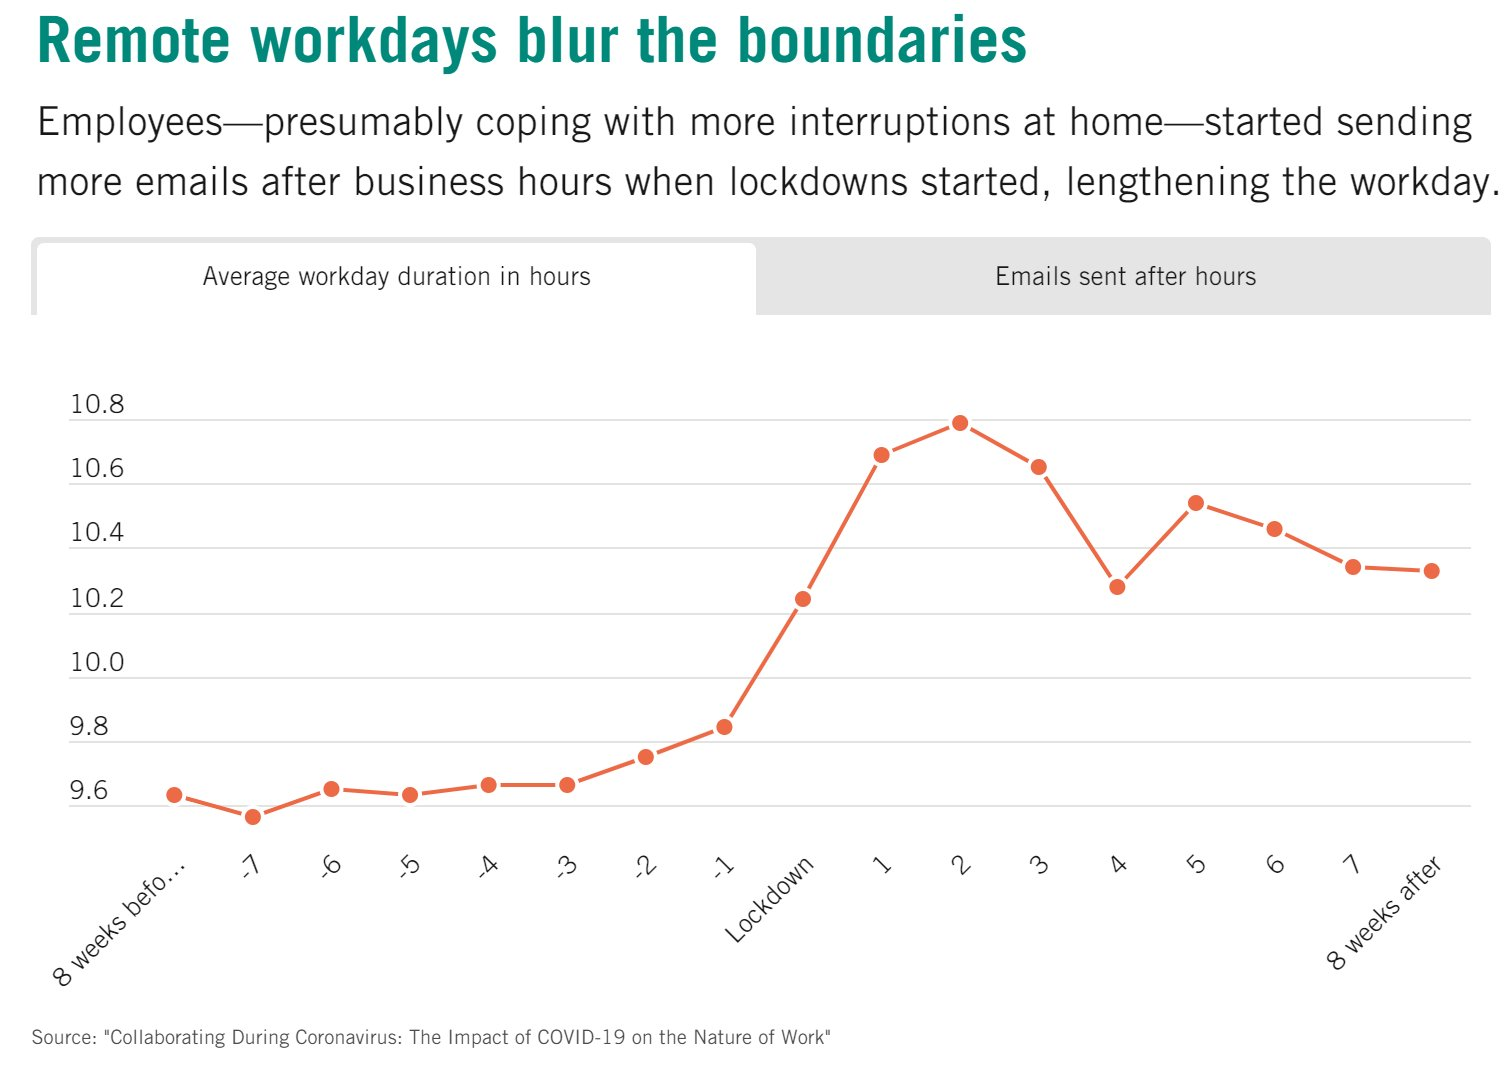 Line graph of remote workdays blurring the boundaries of average workday duration in hours